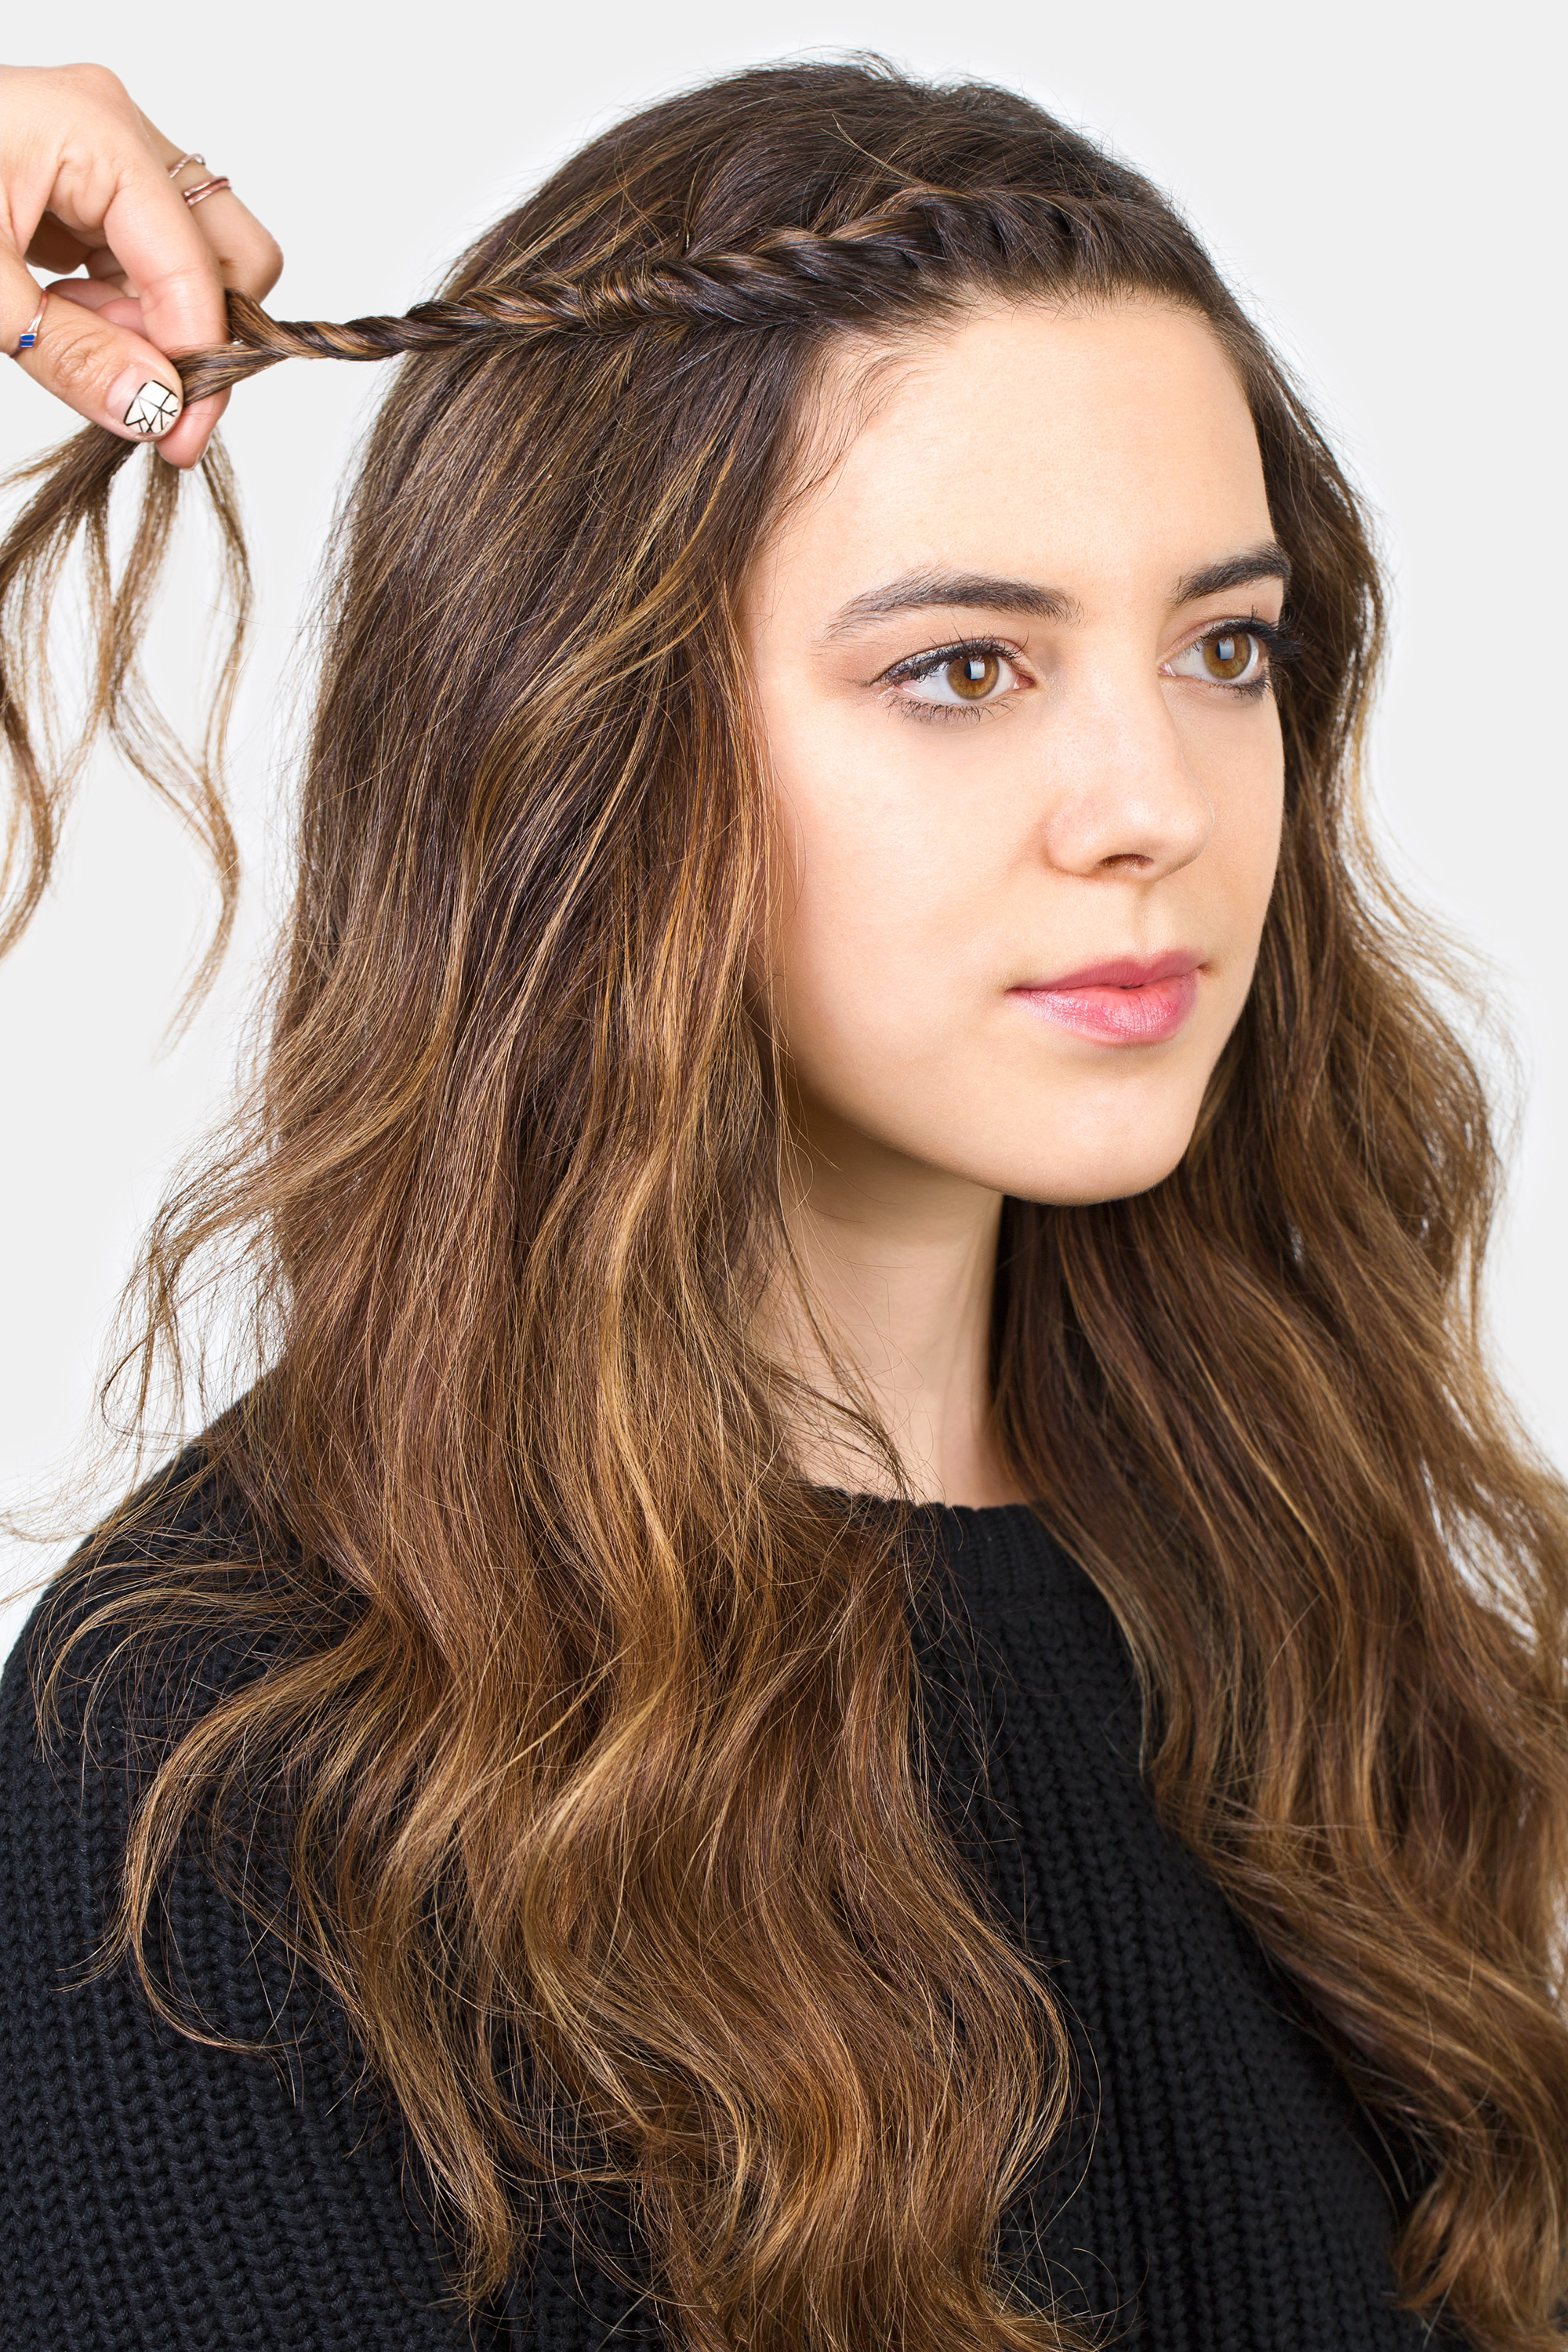 Phenomenal How To Style Bangs 5 Hairstyles To Keep Your Bangs Out Of Your Face Short Hairstyles Gunalazisus